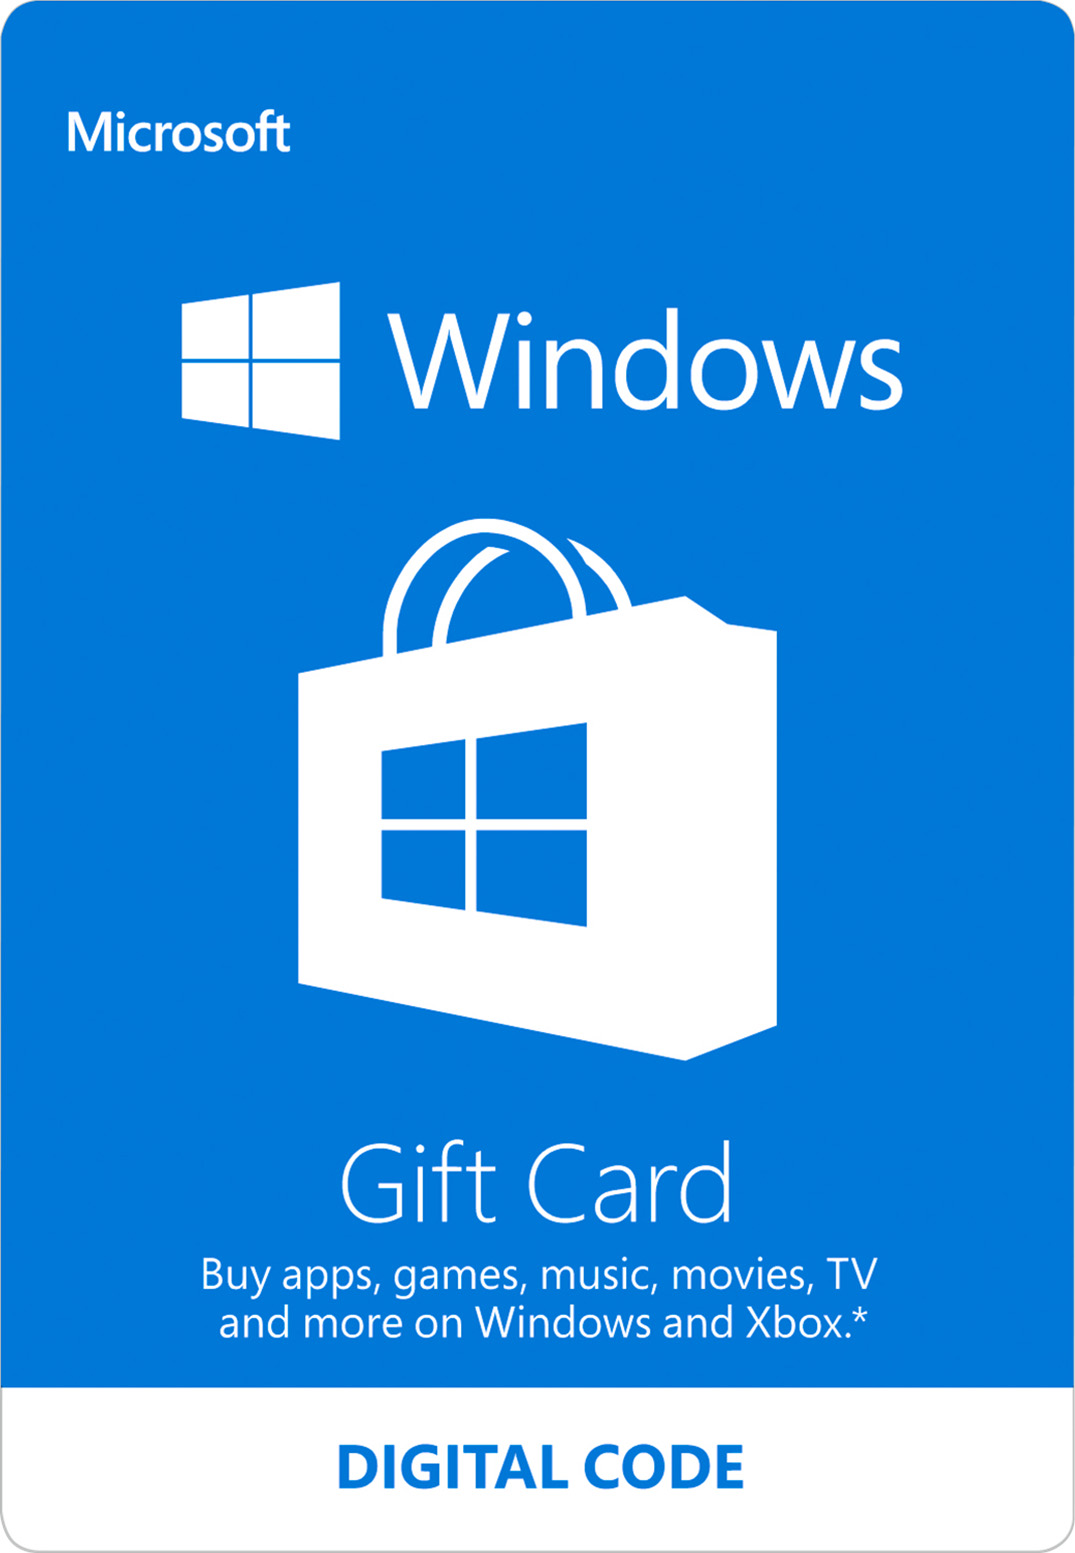 Windows Store Digital Gift Card: $11.00 Deal